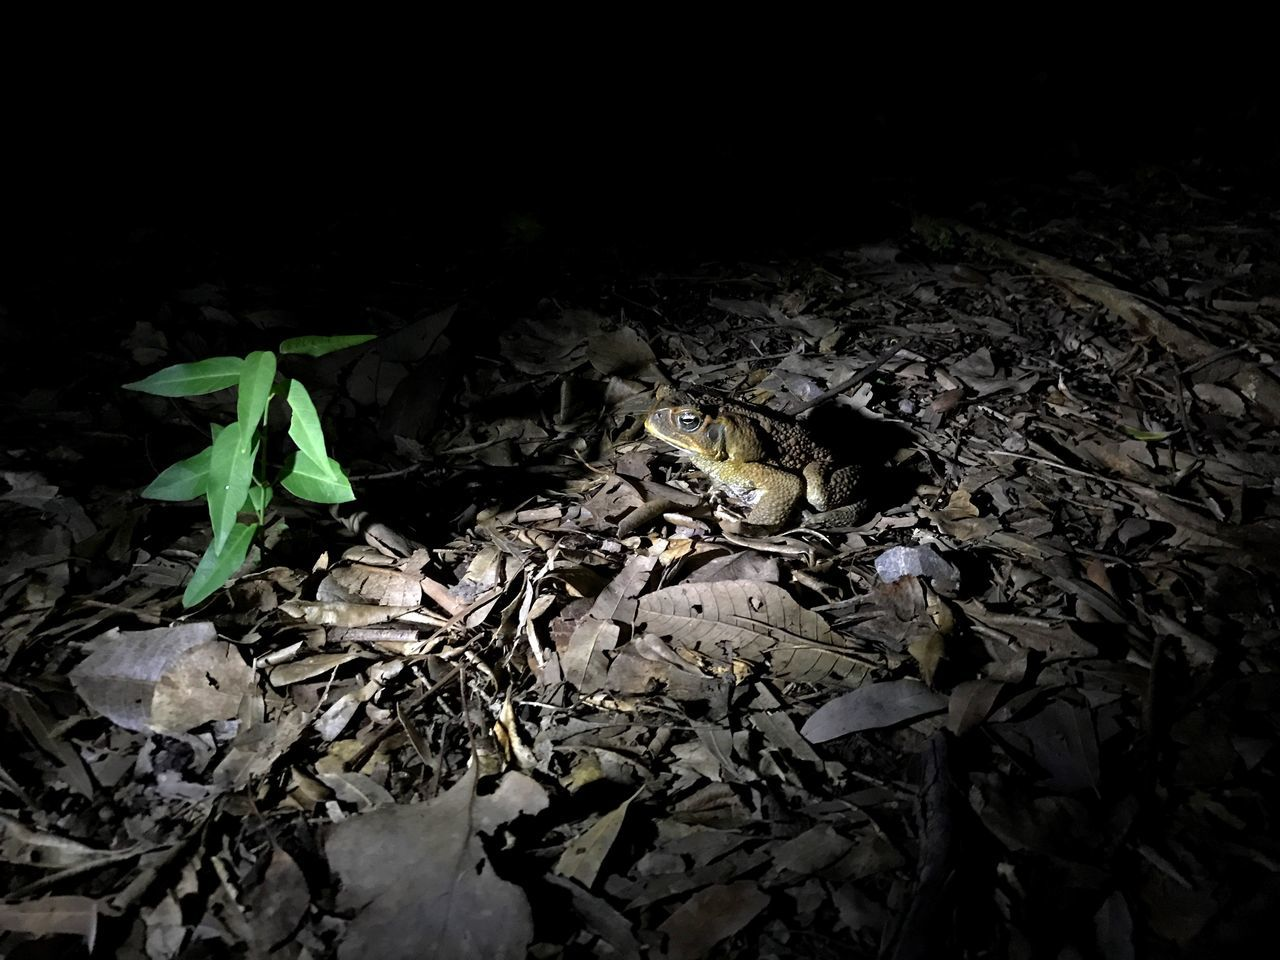 Cane Toad, Queensland, Australia. Leaf No People Nature Outdoors Night Toads And Frogs Poisonous Artificial Light Woodlands